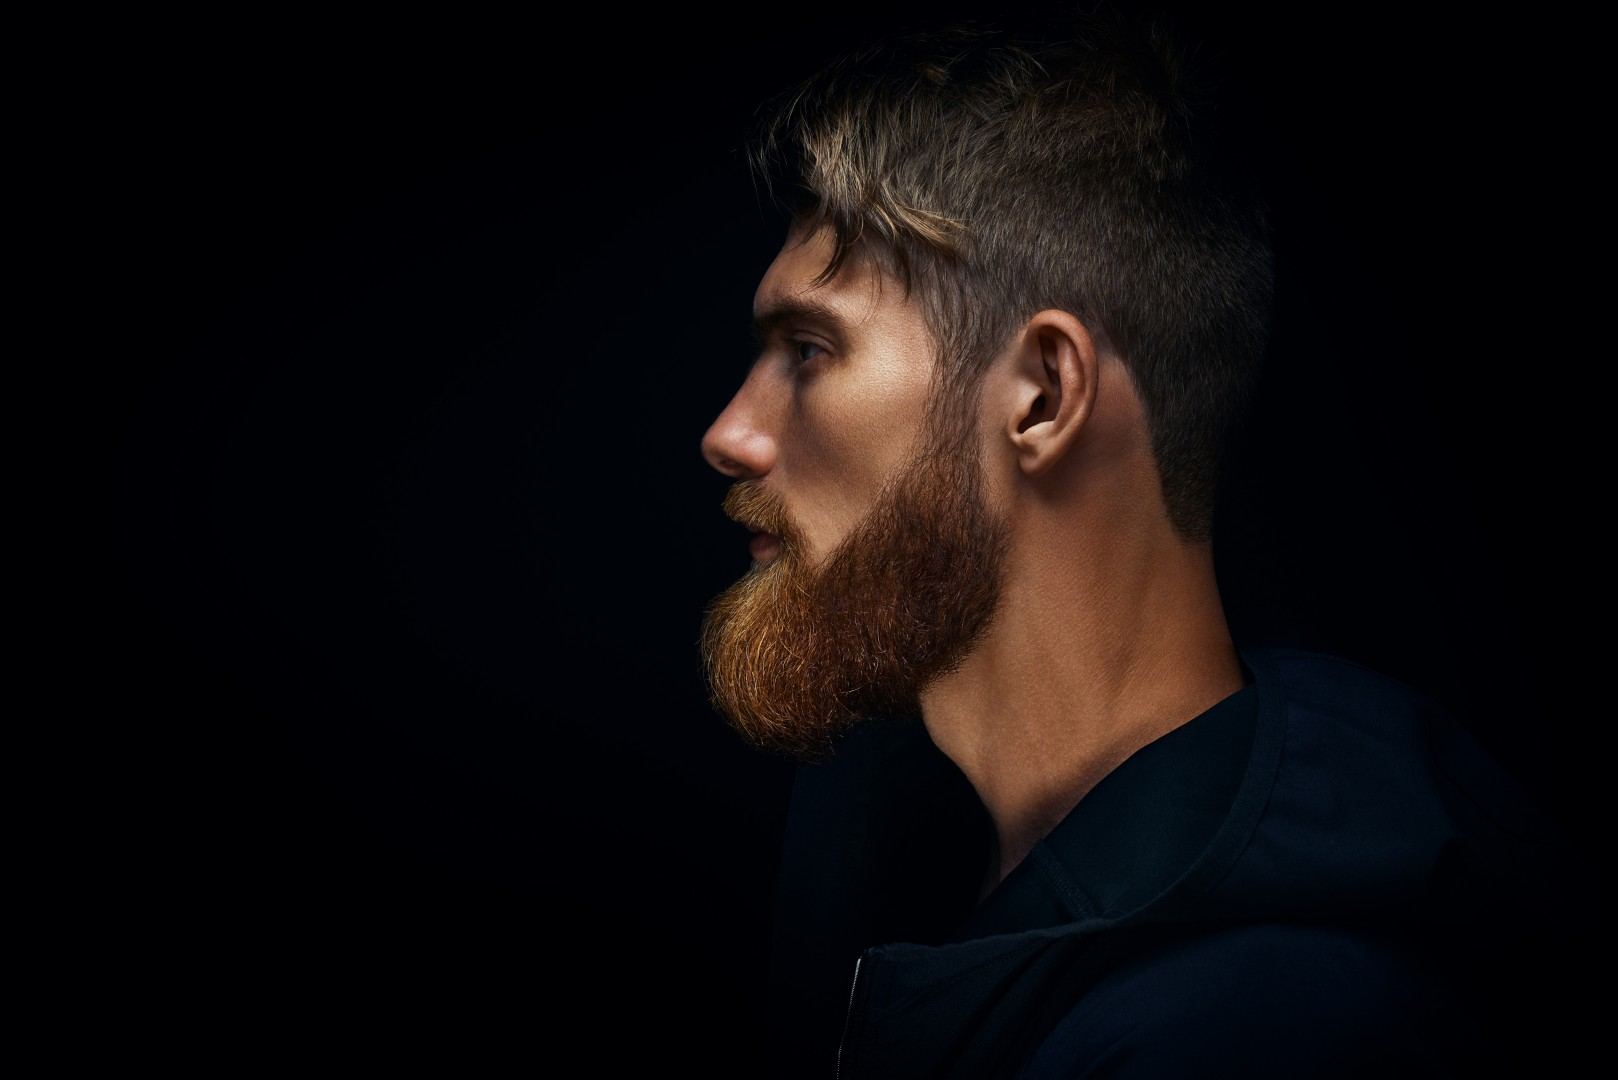 The Big Bang June Side Profile of Bearded Man